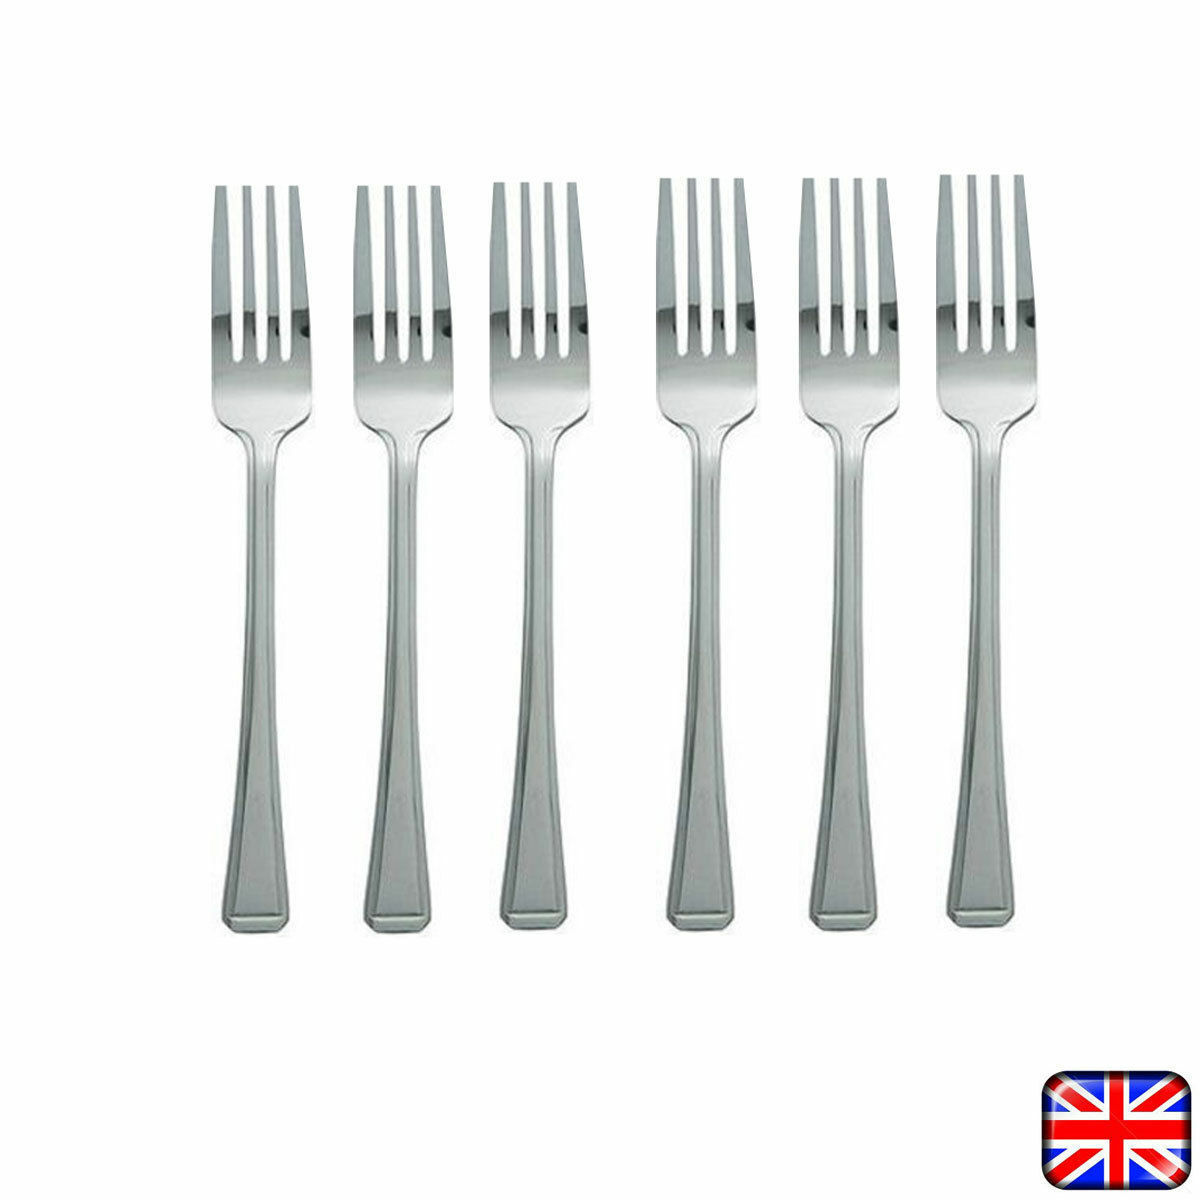 12 X Stainless Steel Cutlery Dining Table Forks Dinner  : 12 X Stainless Steel Cutlery Dining Table Forks from picclick.co.uk size 1200 x 1200 jpeg 75kB